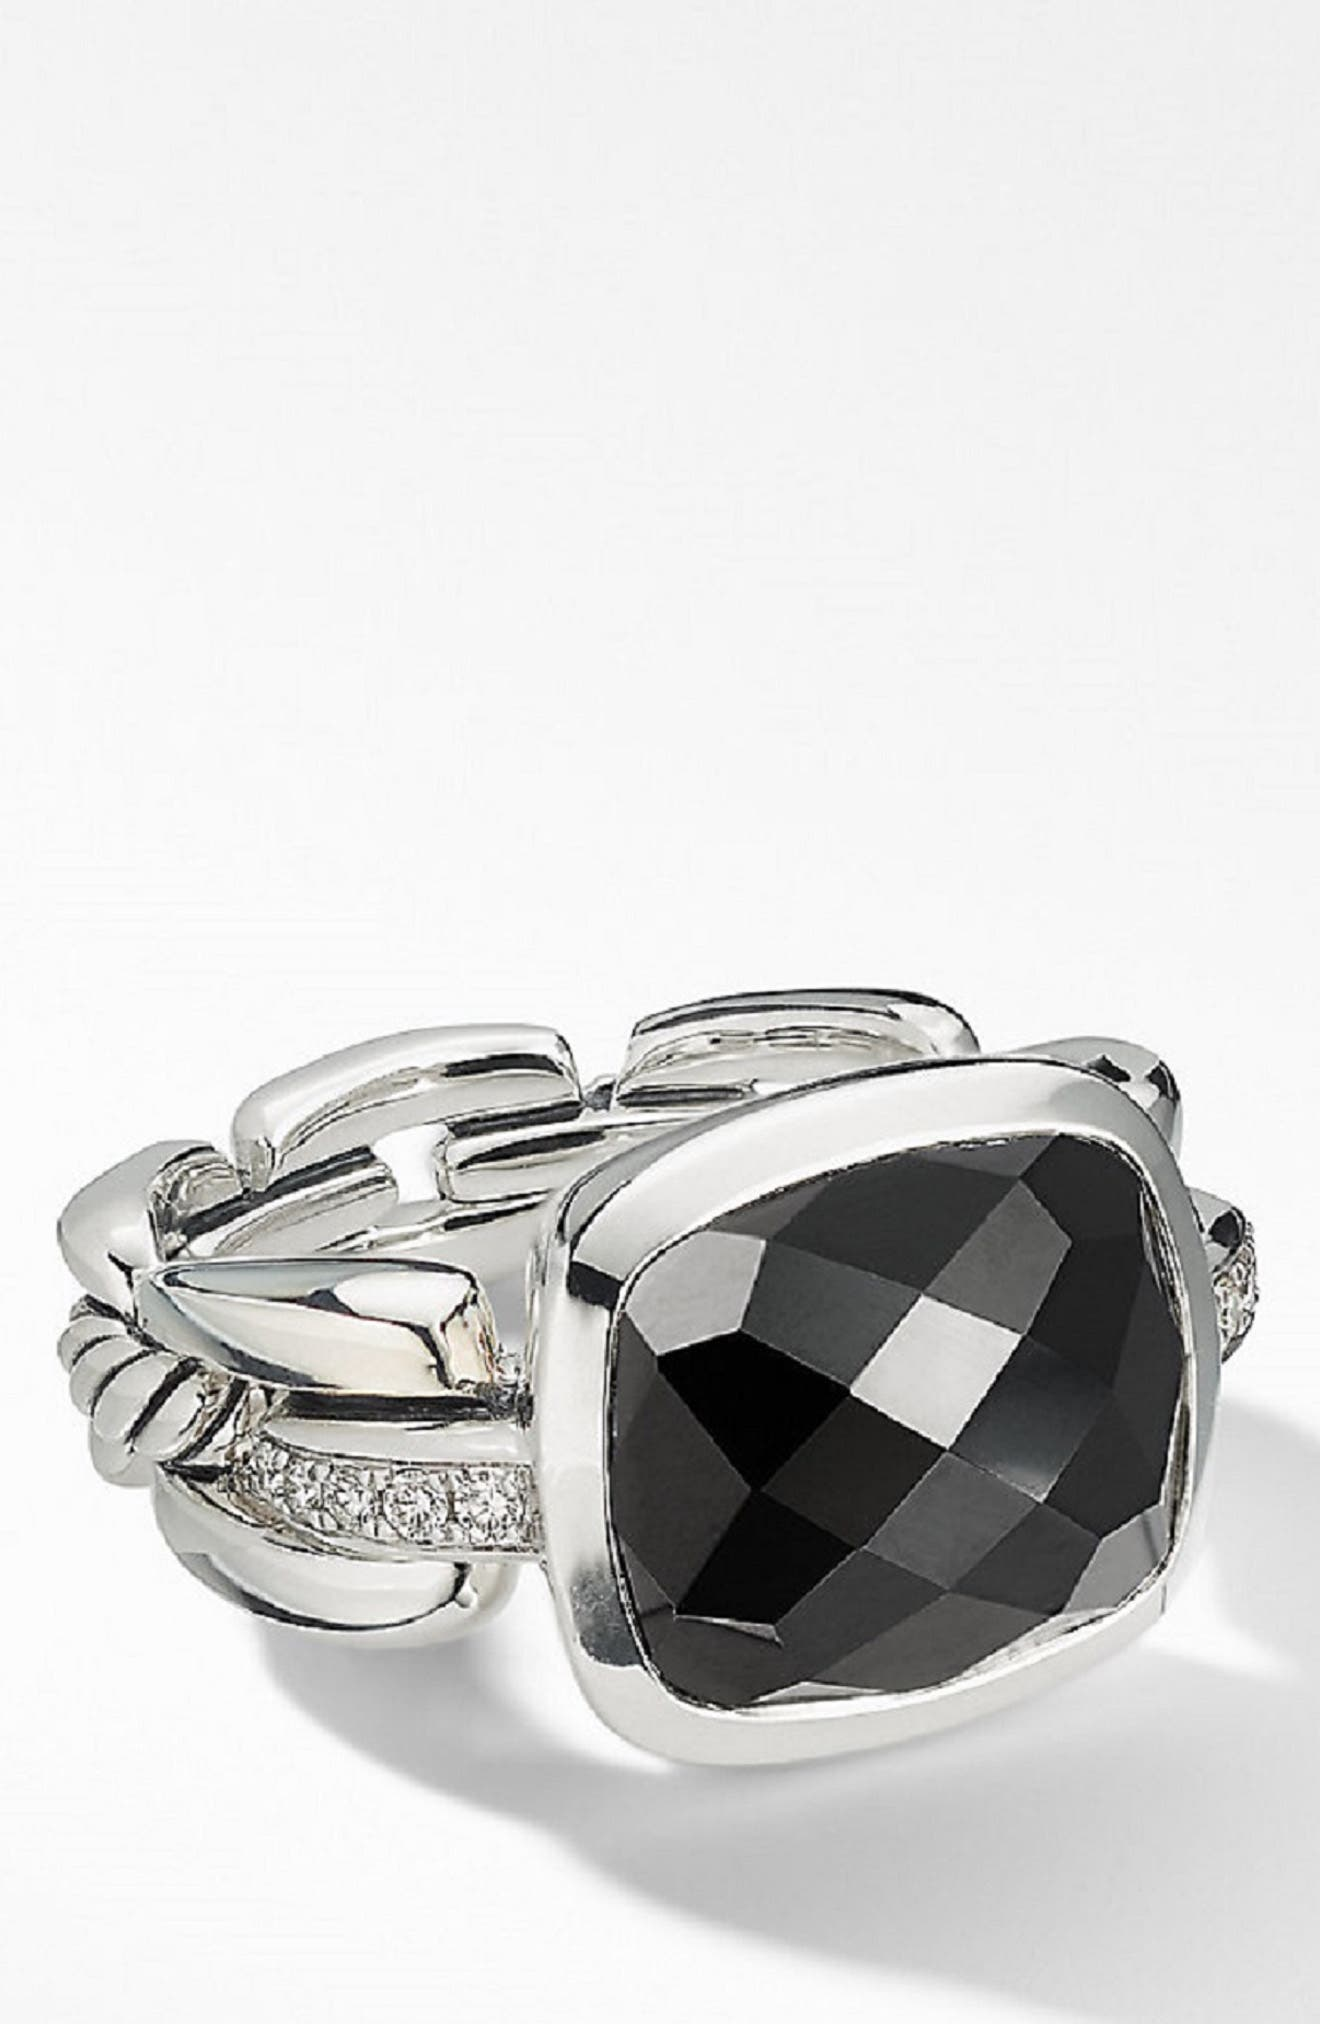 Wellesley Link Statement Ring with Diamonds,                             Main thumbnail 1, color,                             BLACK ONYX